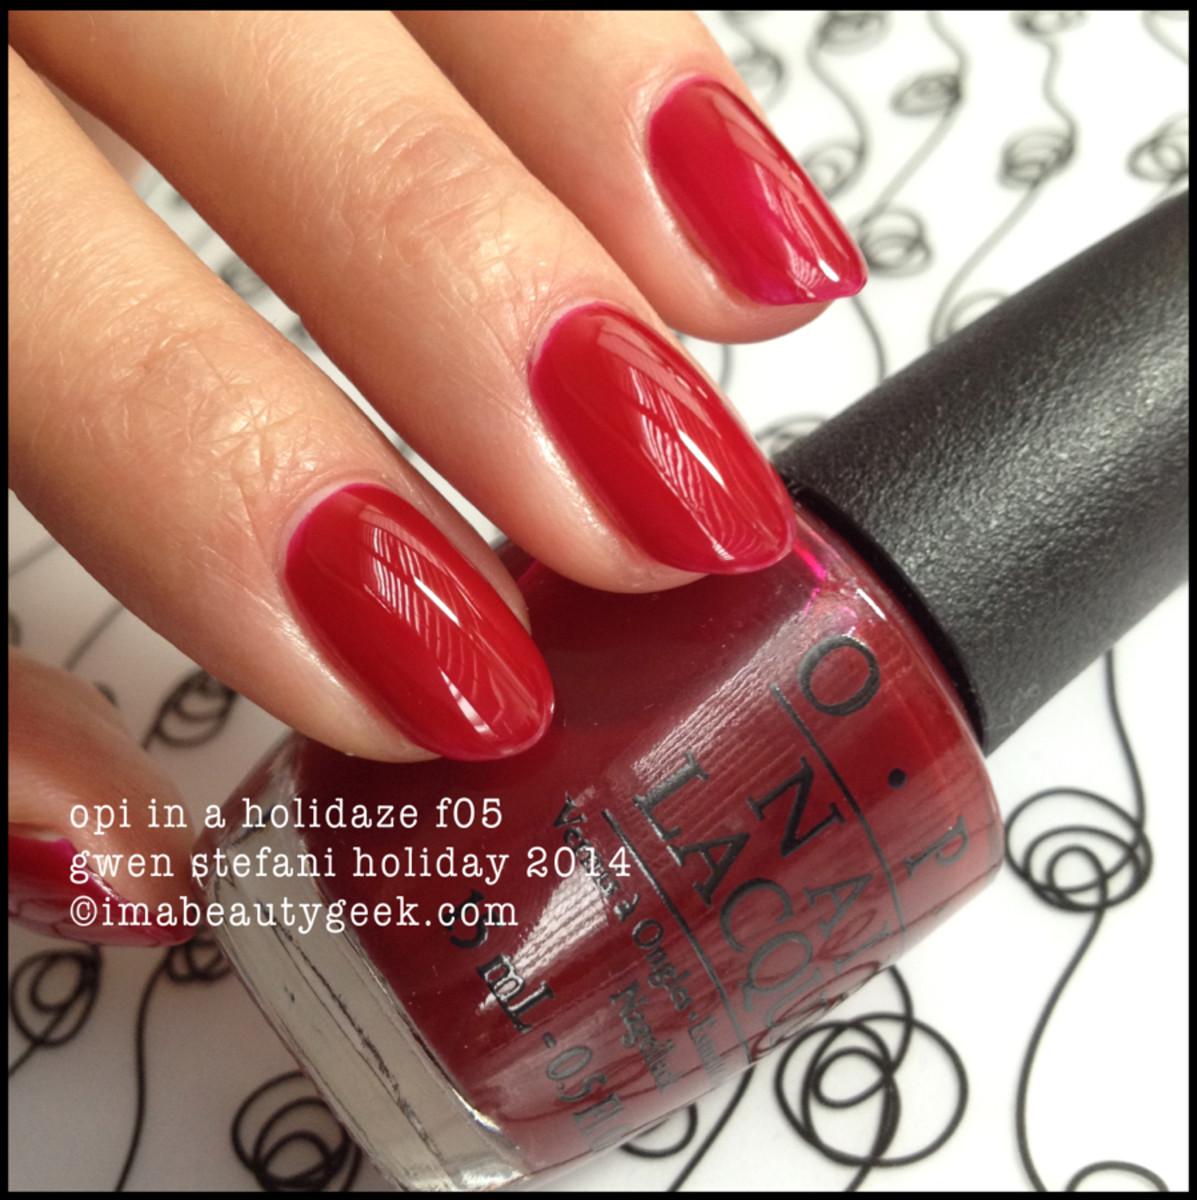 OPI In a Holidaze f05_Gwen Stefani Holiday 2014